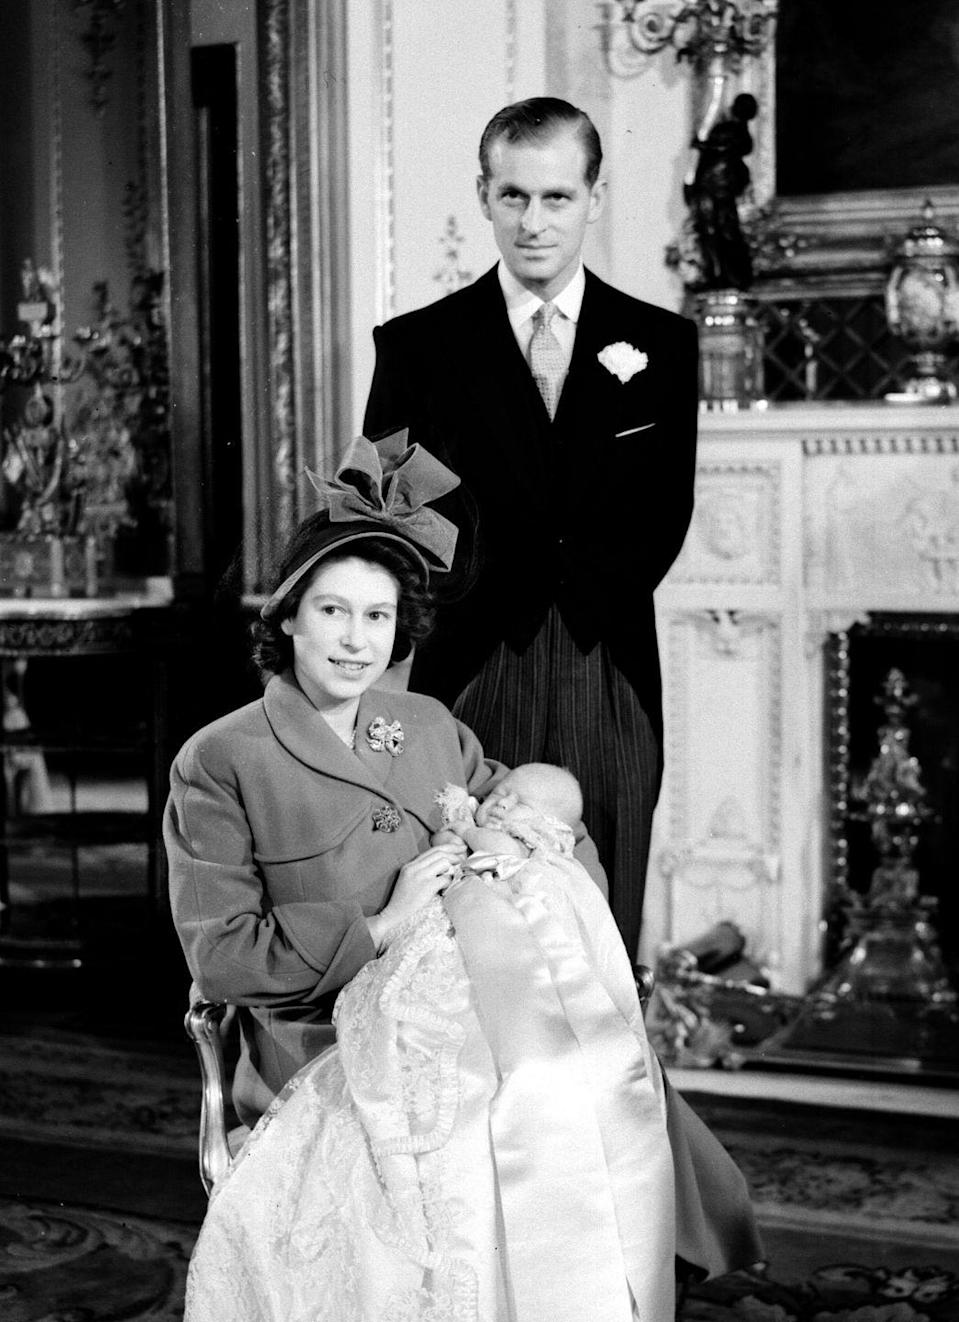 """<p>The royal couple had their first child, <a href=""""https://www.goodhousekeeping.com/life/a22749353/prince-charles-young-camilla-diana/"""" rel=""""nofollow noopener"""" target=""""_blank"""" data-ylk=""""slk:Prince Charles"""" class=""""link rapid-noclick-resp"""">Prince Charles</a>, almost exactly a year after their wedding.</p>"""